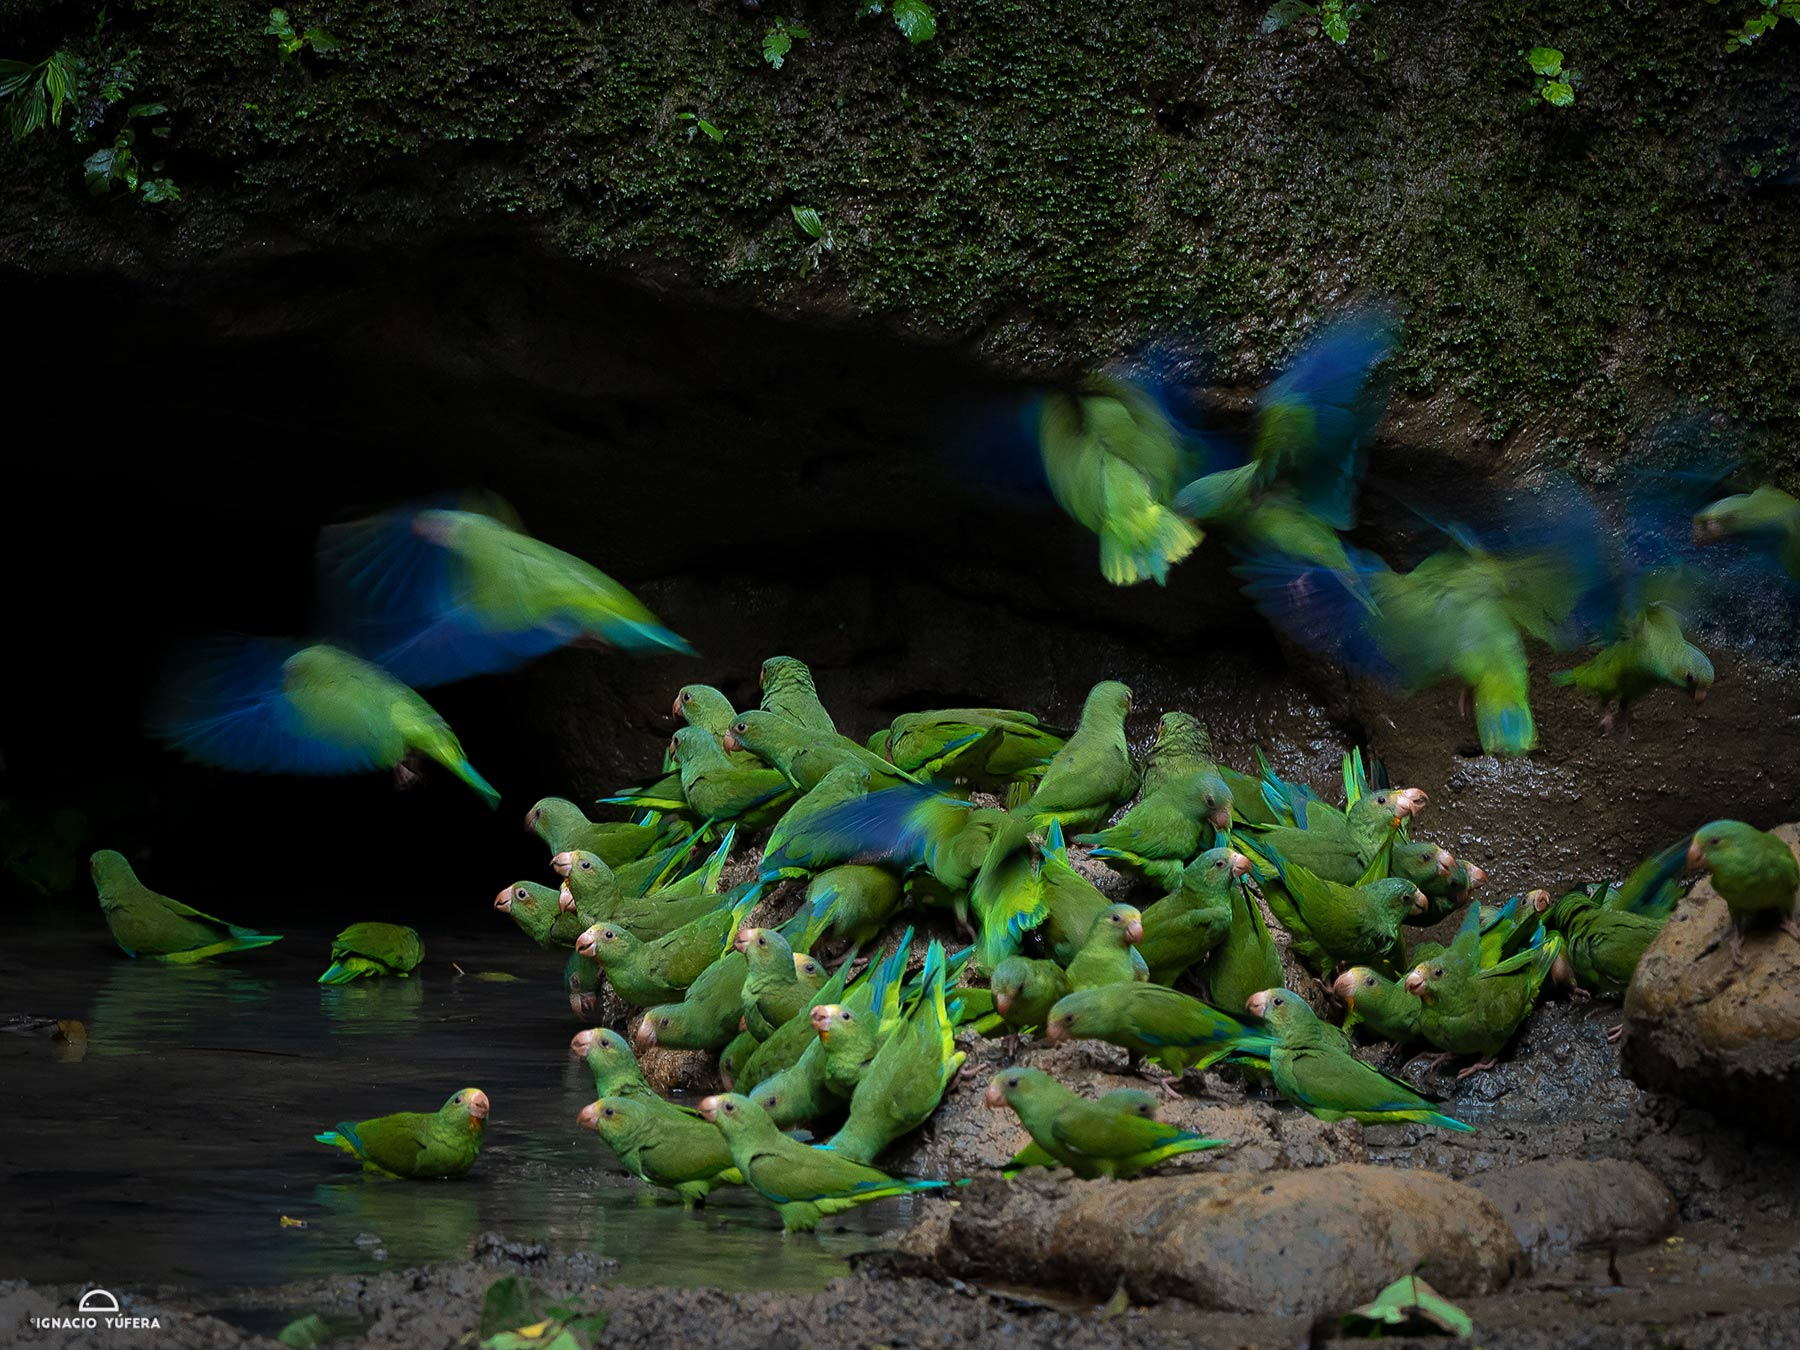 Cobalt-winged parakeet (Brotogeris cyanoptera), gathered at mineral dpring, Yasuni National Park, Ecuador